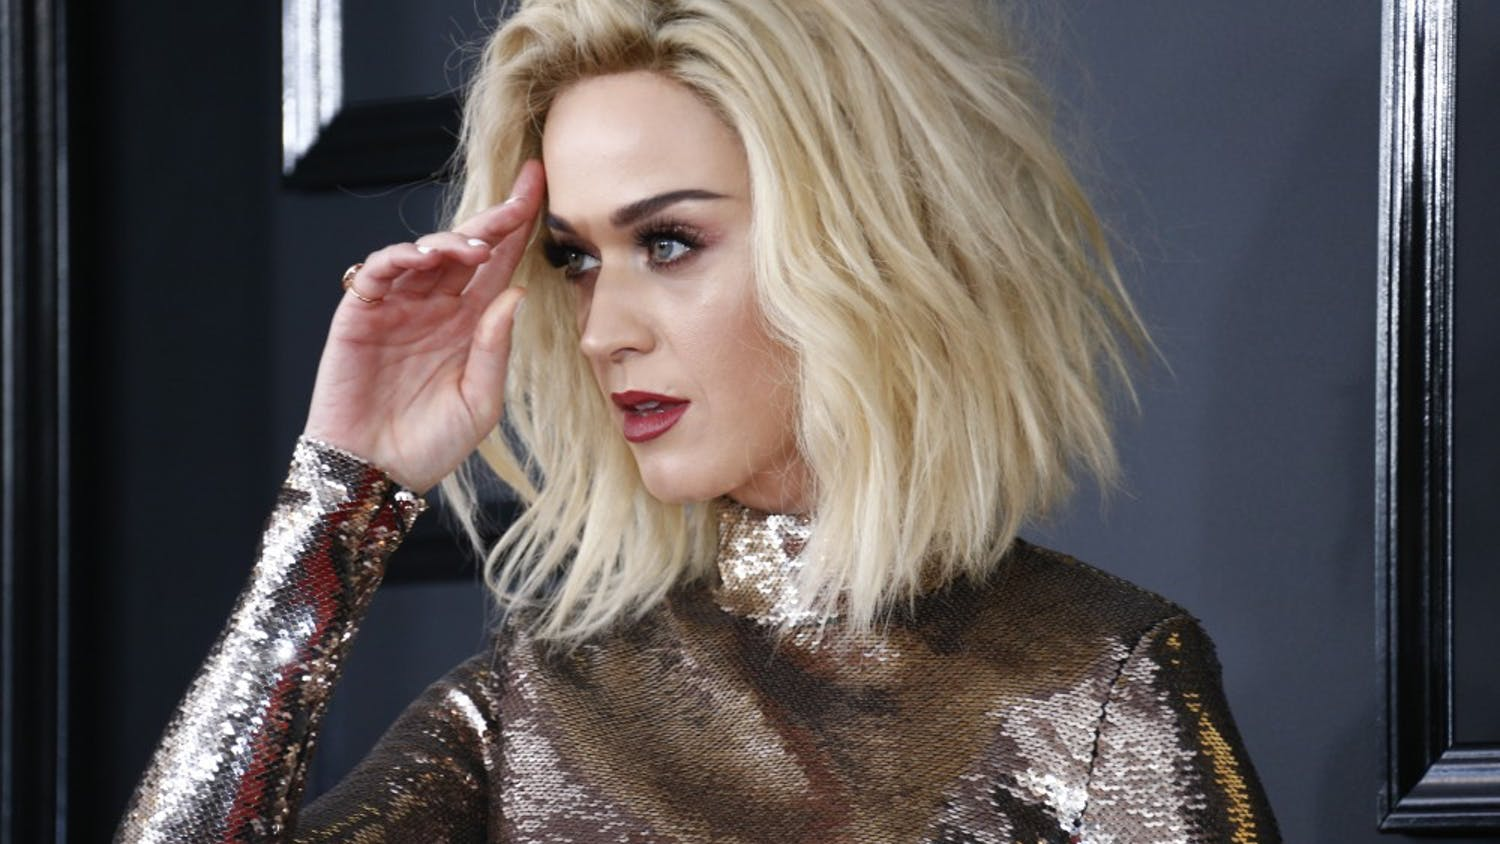 Katy Perry during the arrivals at the 59th Annual Grammy Awards at Staples Center in Los Angeles on Sunday, Feb. 12, 2017. (Marcus Yam/Los Angeles Times/TNS)